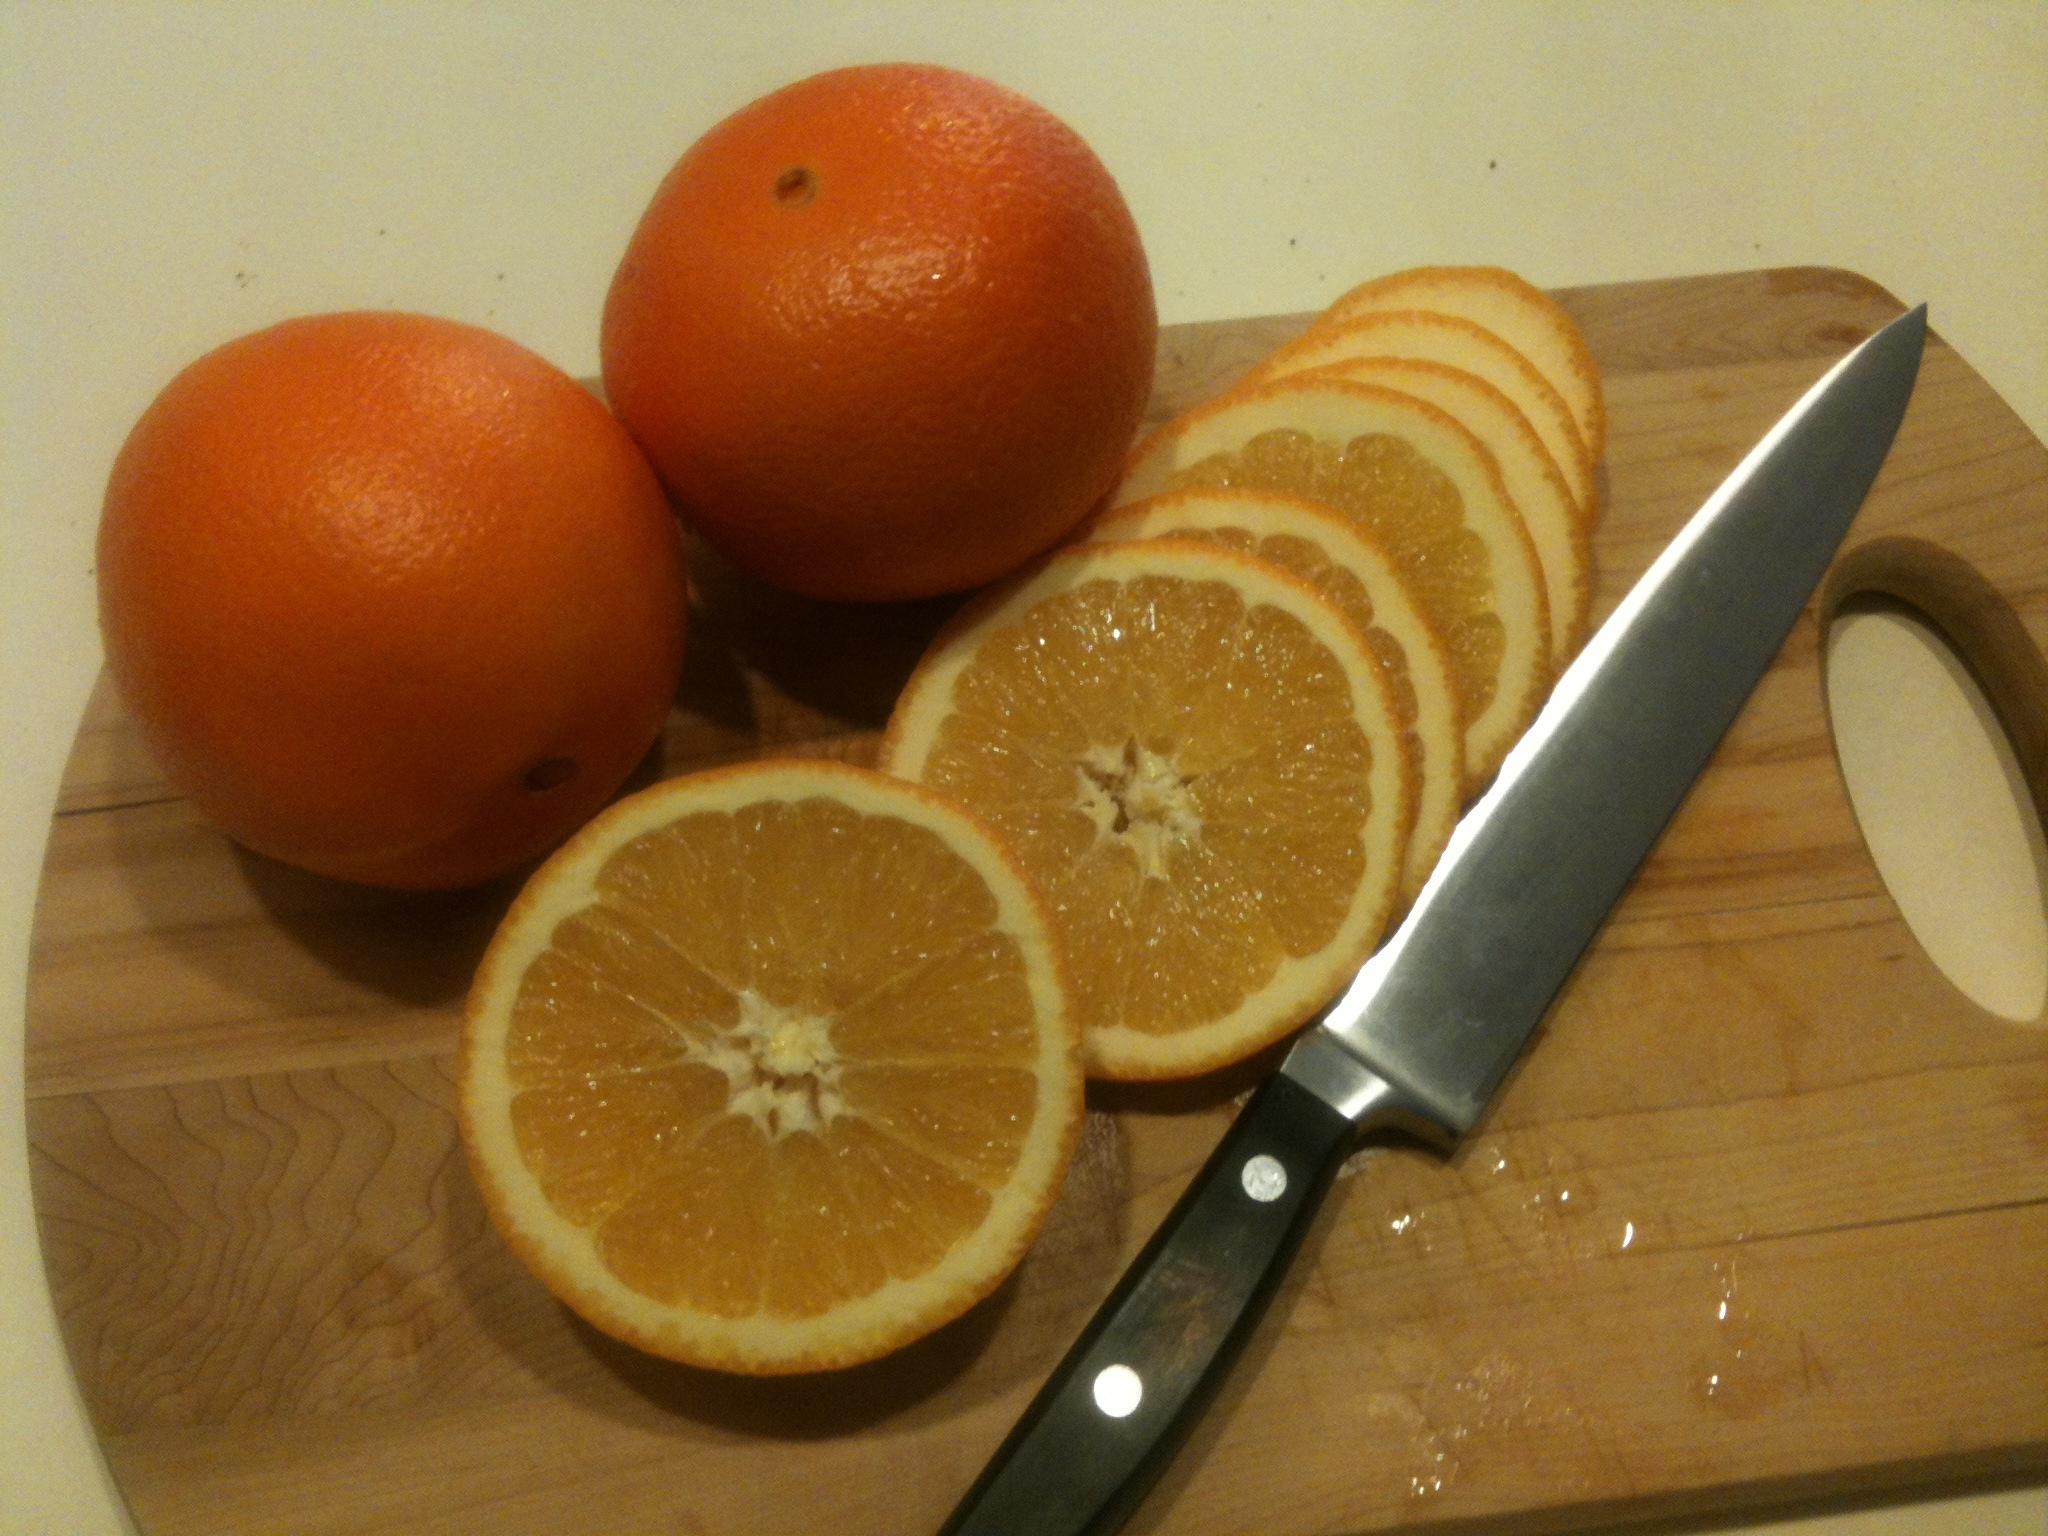 Drying Out Oranges Christmas Decorations Diy Dried Fruit Christmas Ornaments Wolffs Apple House